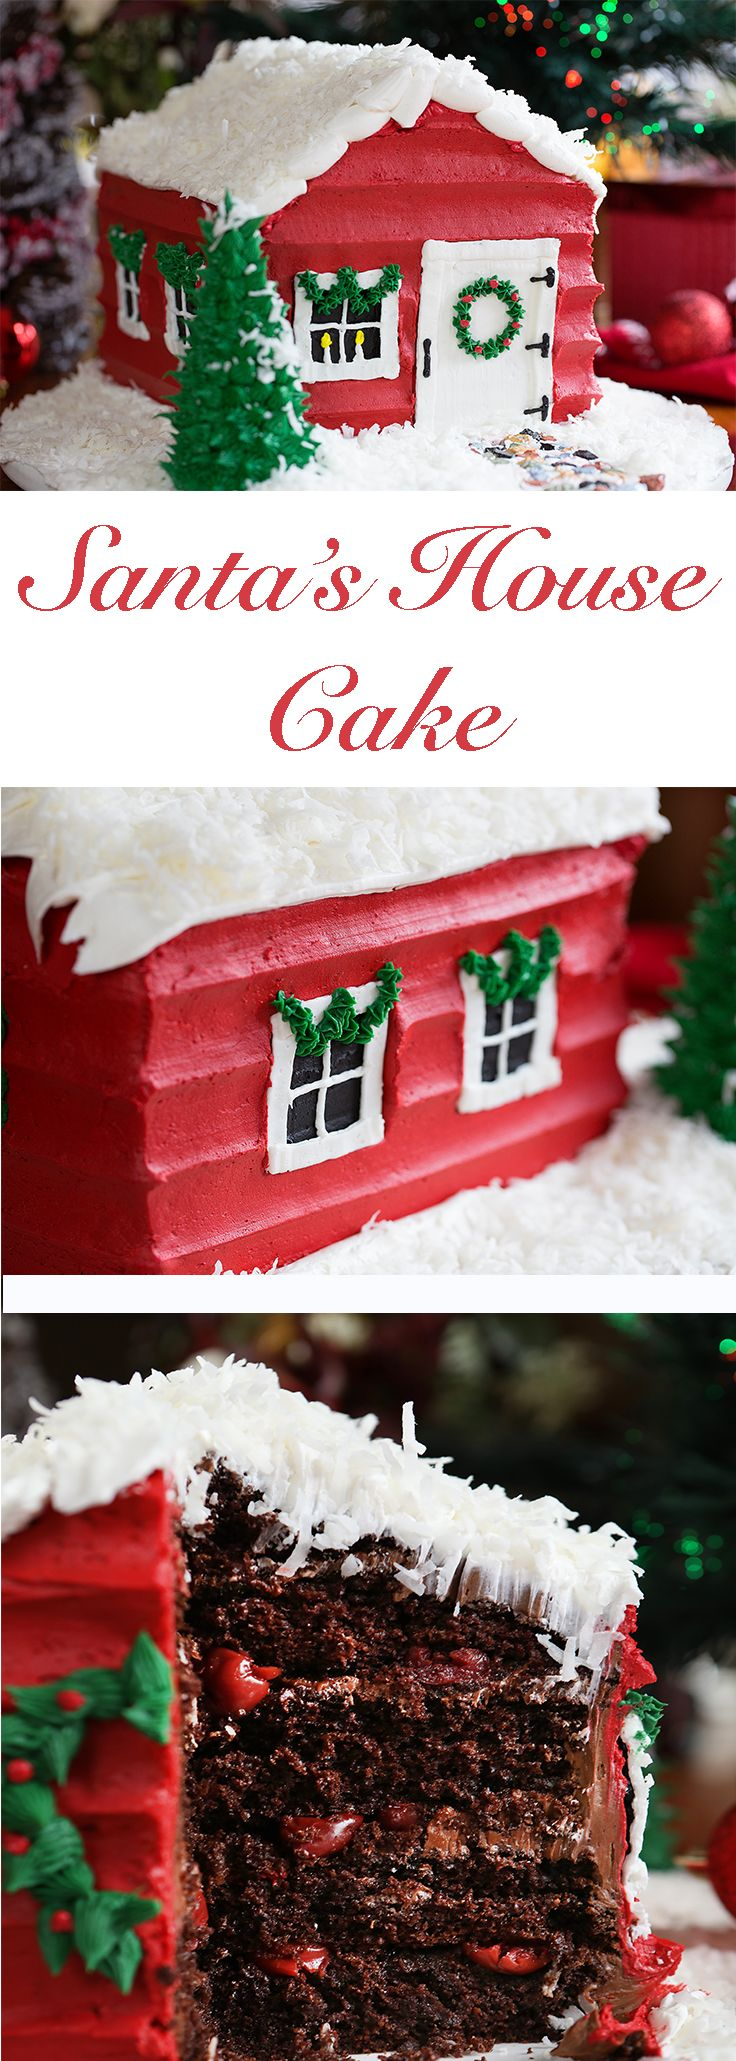 You might be surprised how easy this is after you see my tips & tricks!! #christmascake #santahouse #cakedecorating #buttercream #christmascake #iambaker